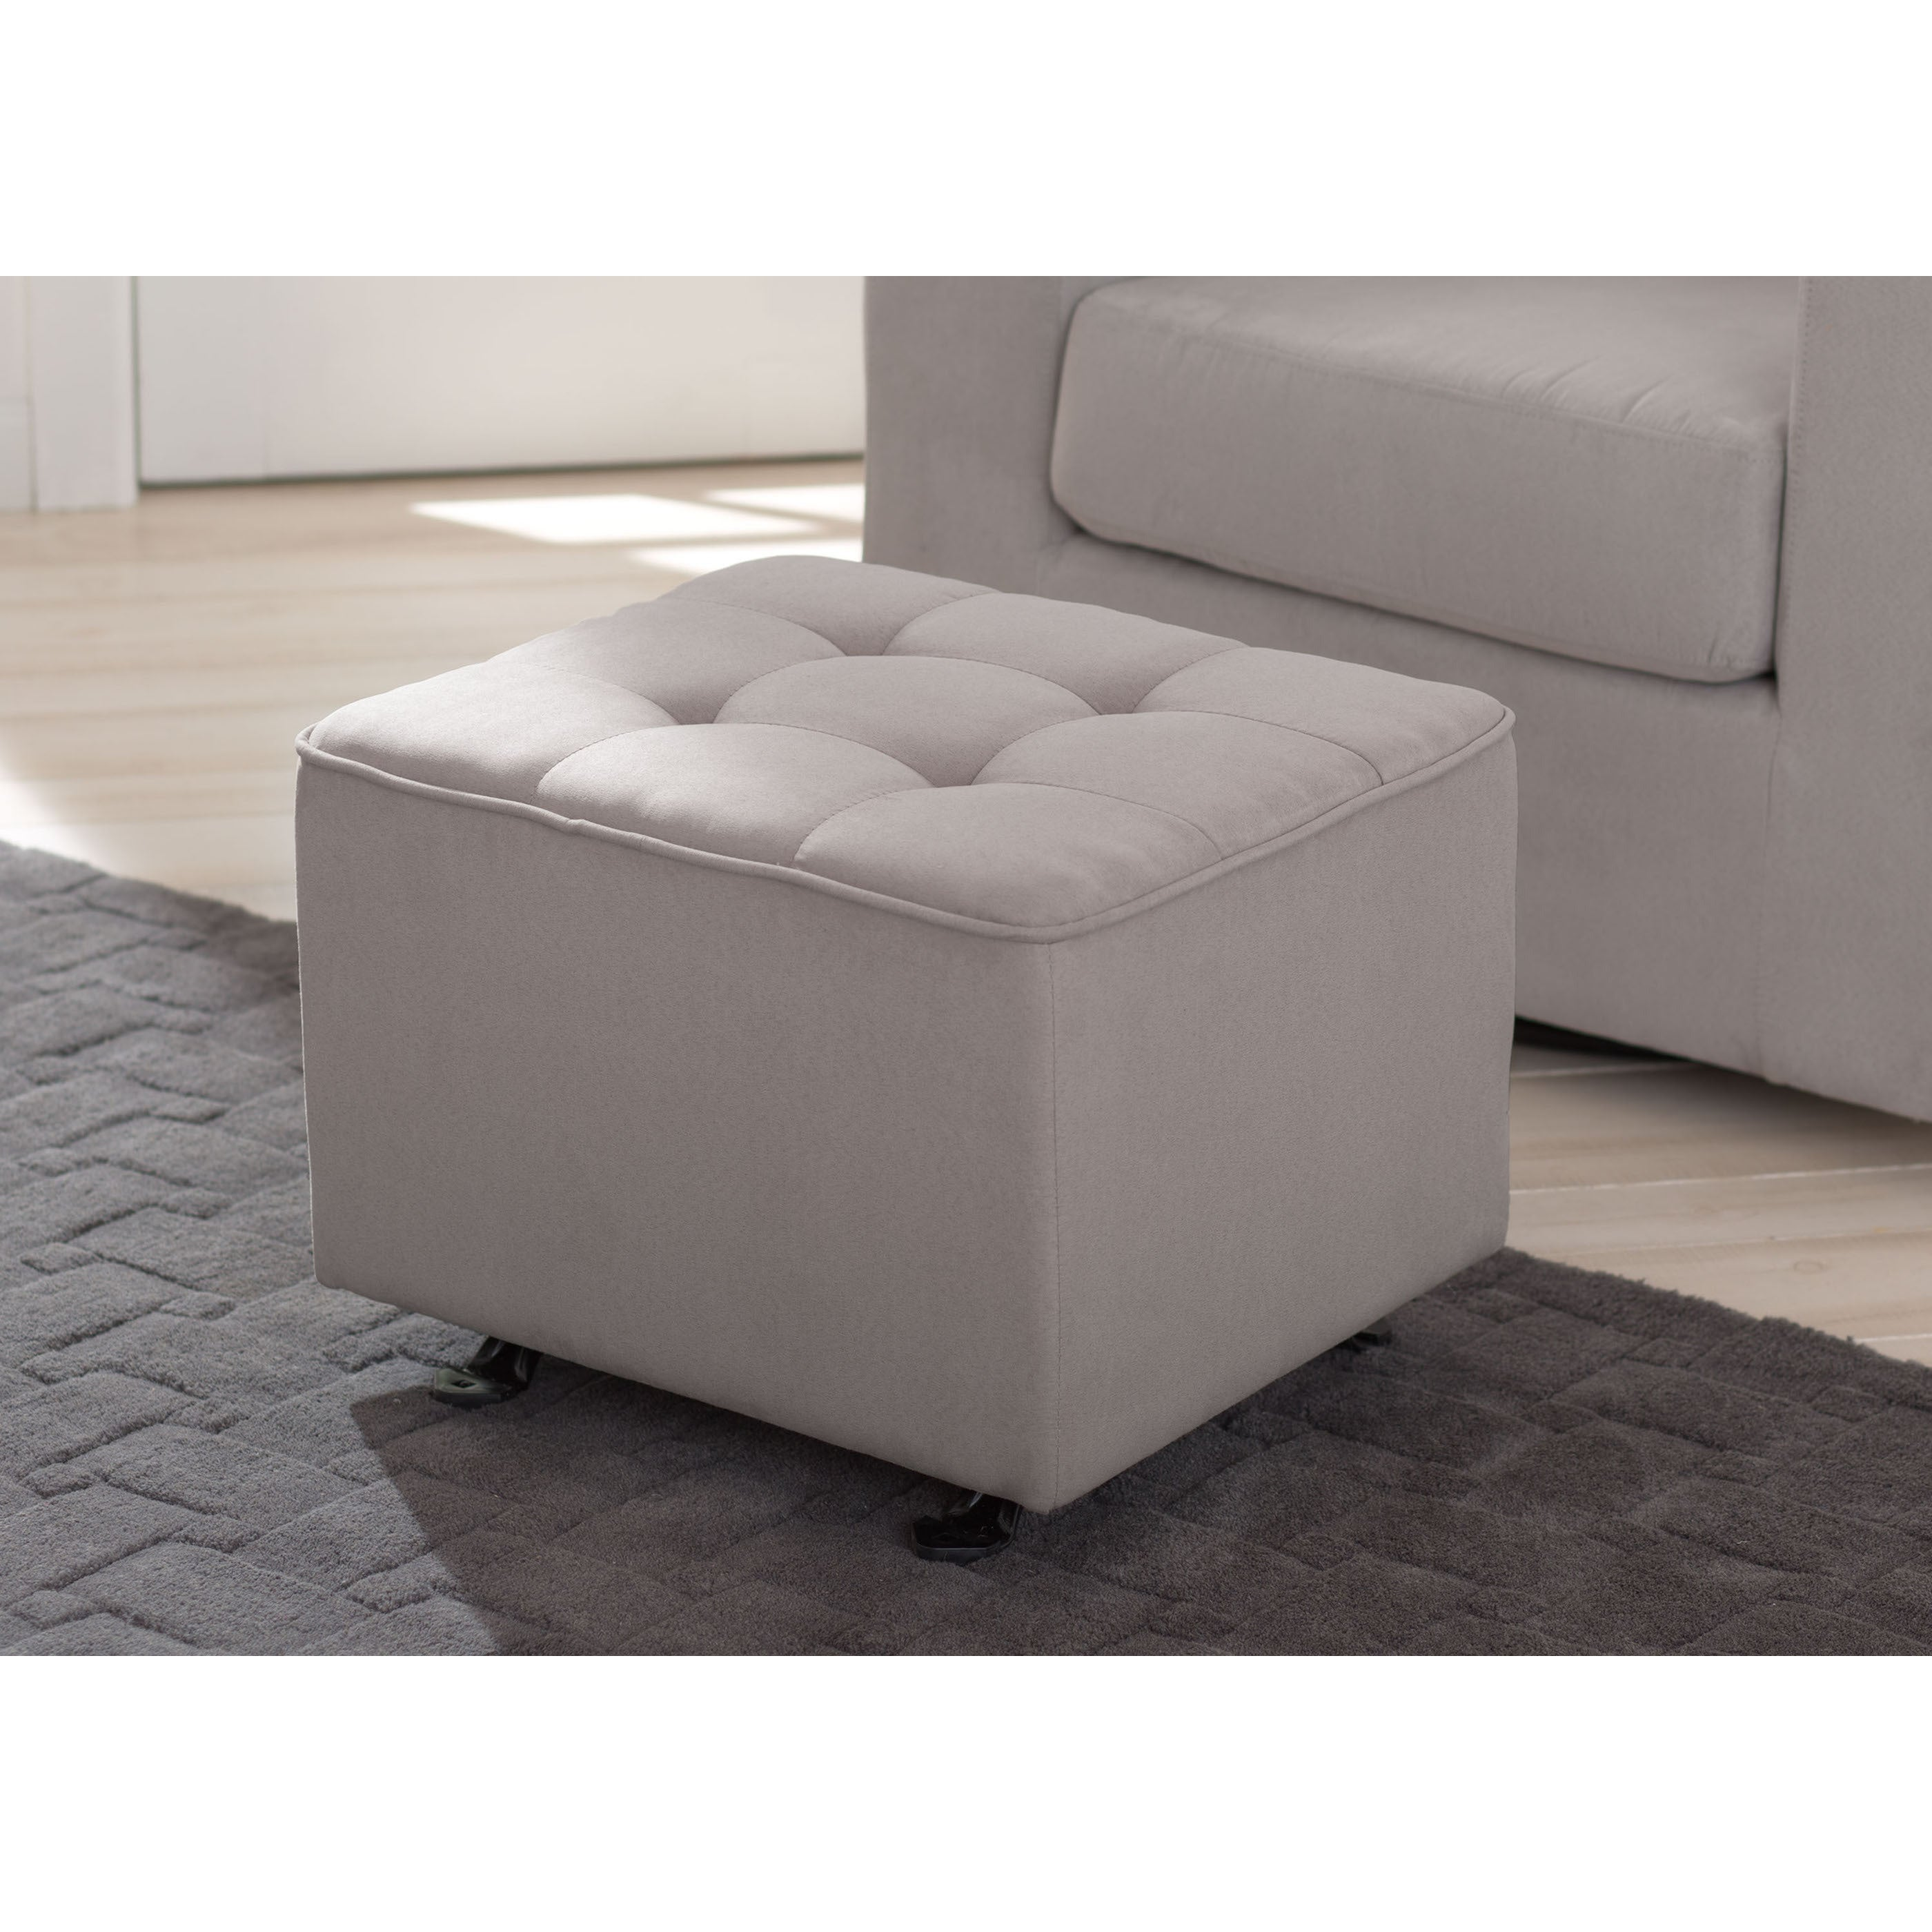 Dove Grey Delta Children Nursery Tufted Gliding Ottoman Free Shipping Today 14221041